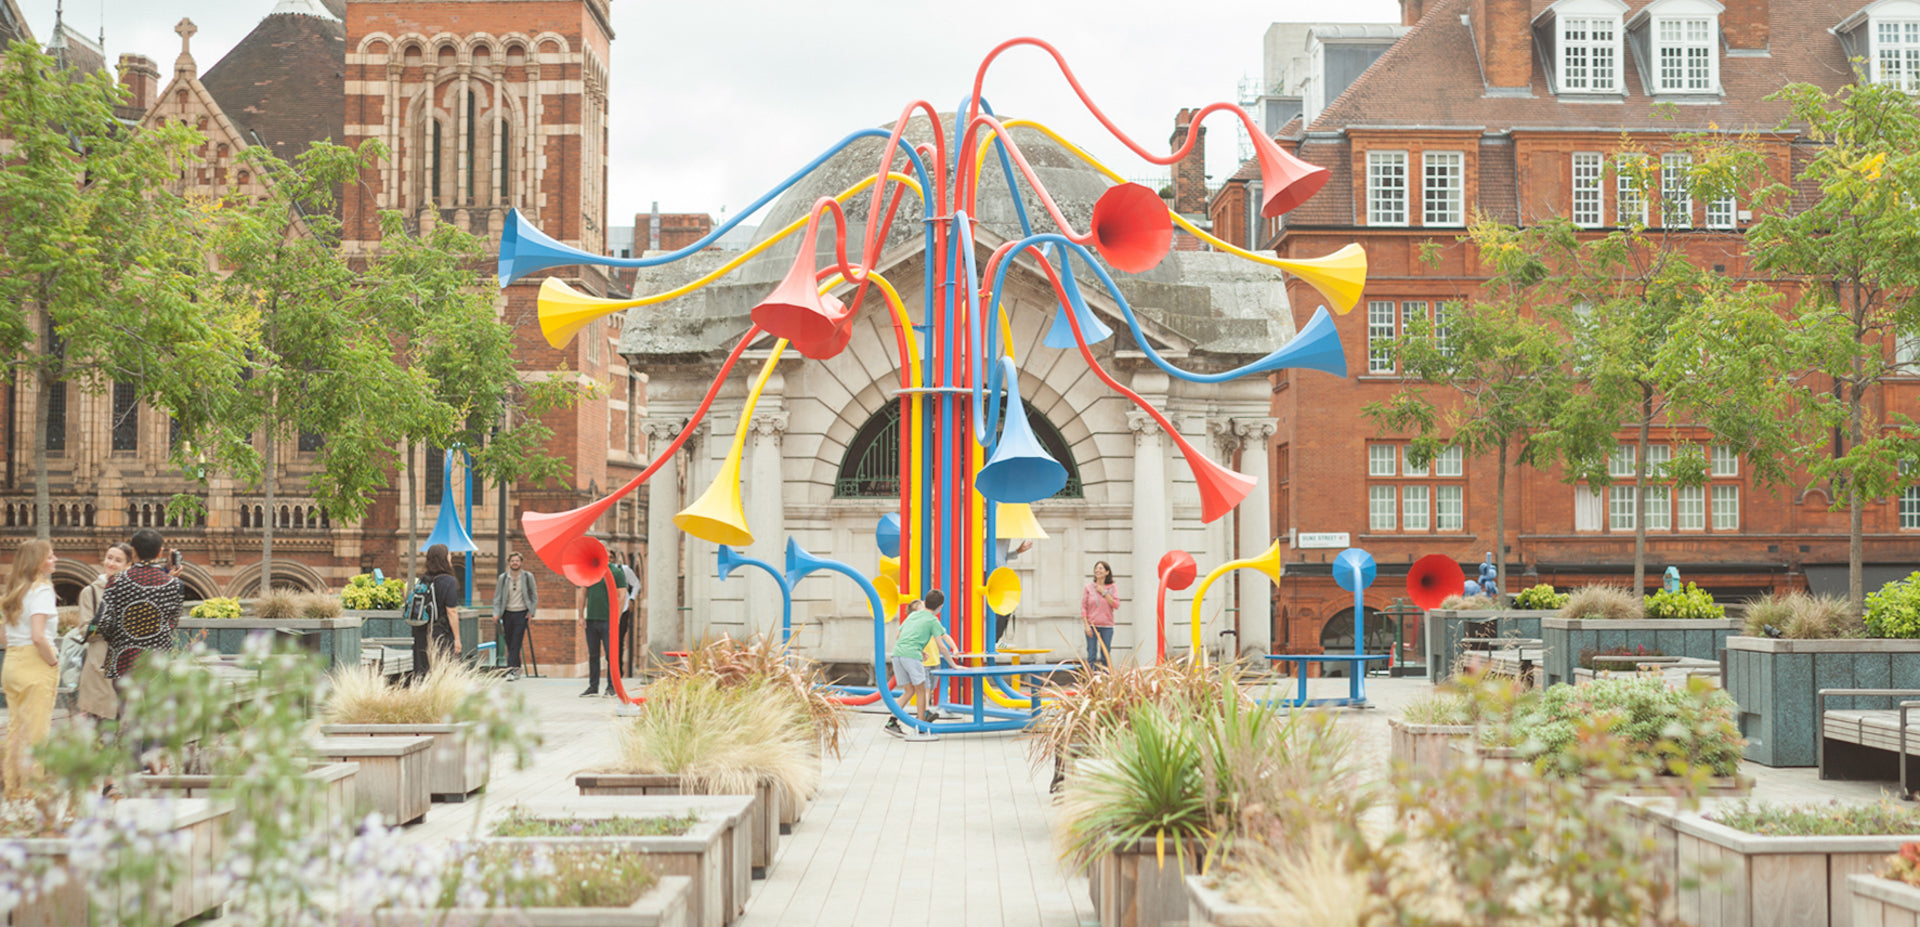 Sonic Bloom by Yuri Suzuki, curated by Alter-Projects. Photo © Alberto Balazs